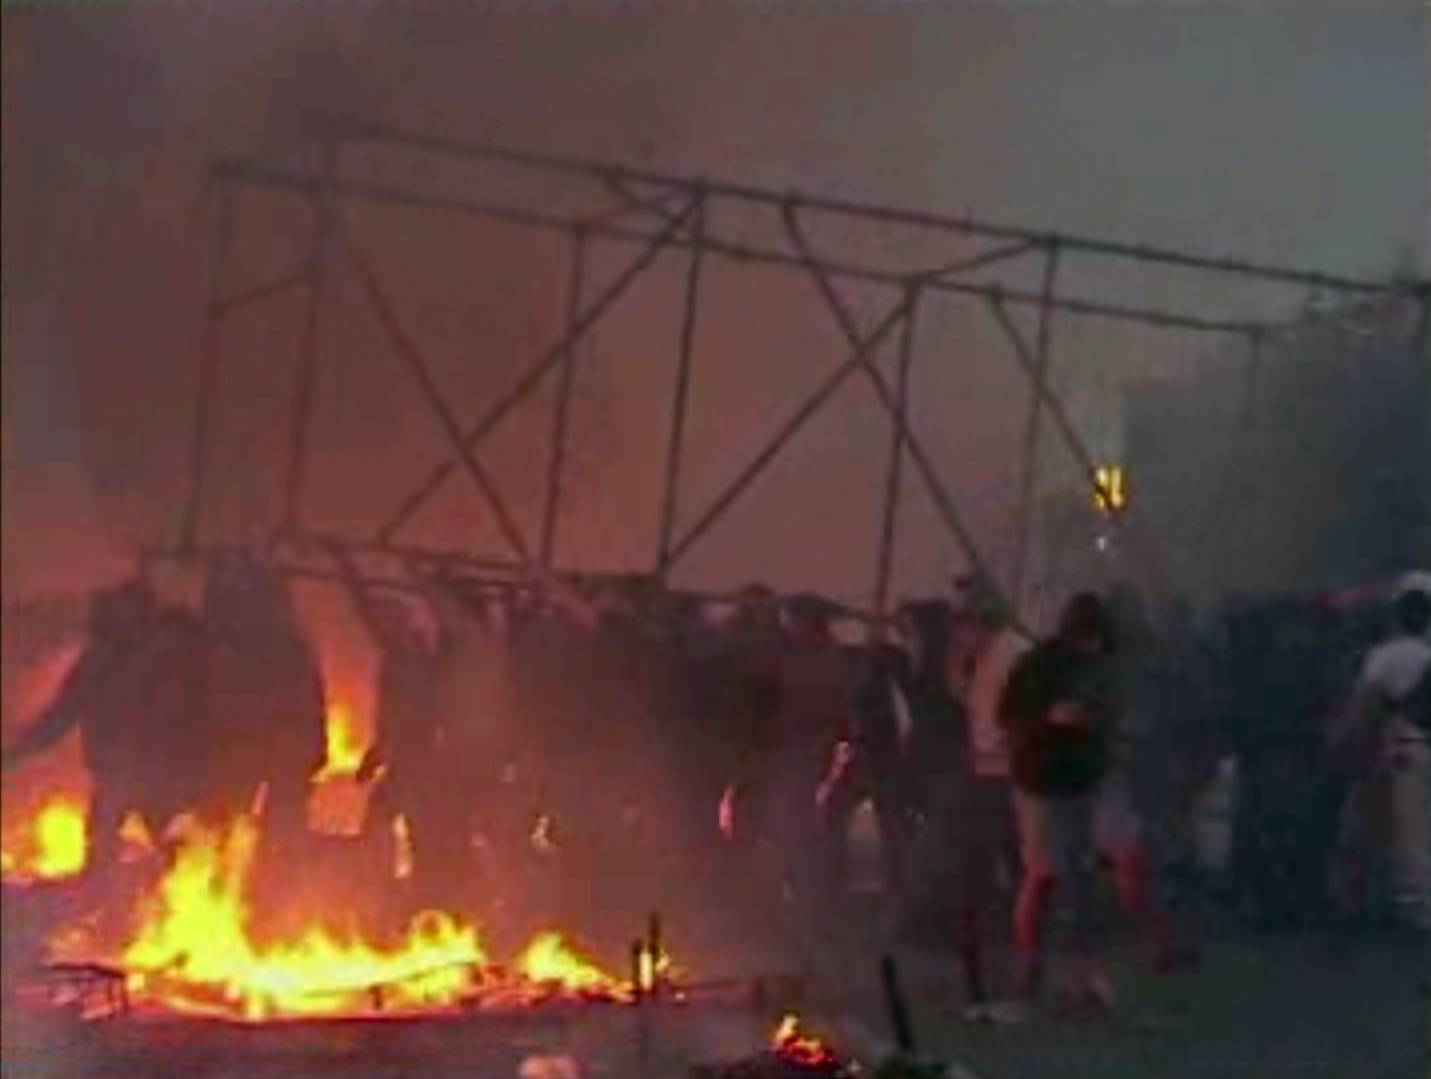 This image made from AP video shows people carrying a scaffolding frame through fires on the ground in Odessa, Ukraine, on Friday, May 2, 2014. Deadly clashes took place in the southern Ukraine port of Odessa on Friday, triggered by Ukraine's offensive to recapture the eastern city of Slovyansk from pro-Russia forces.